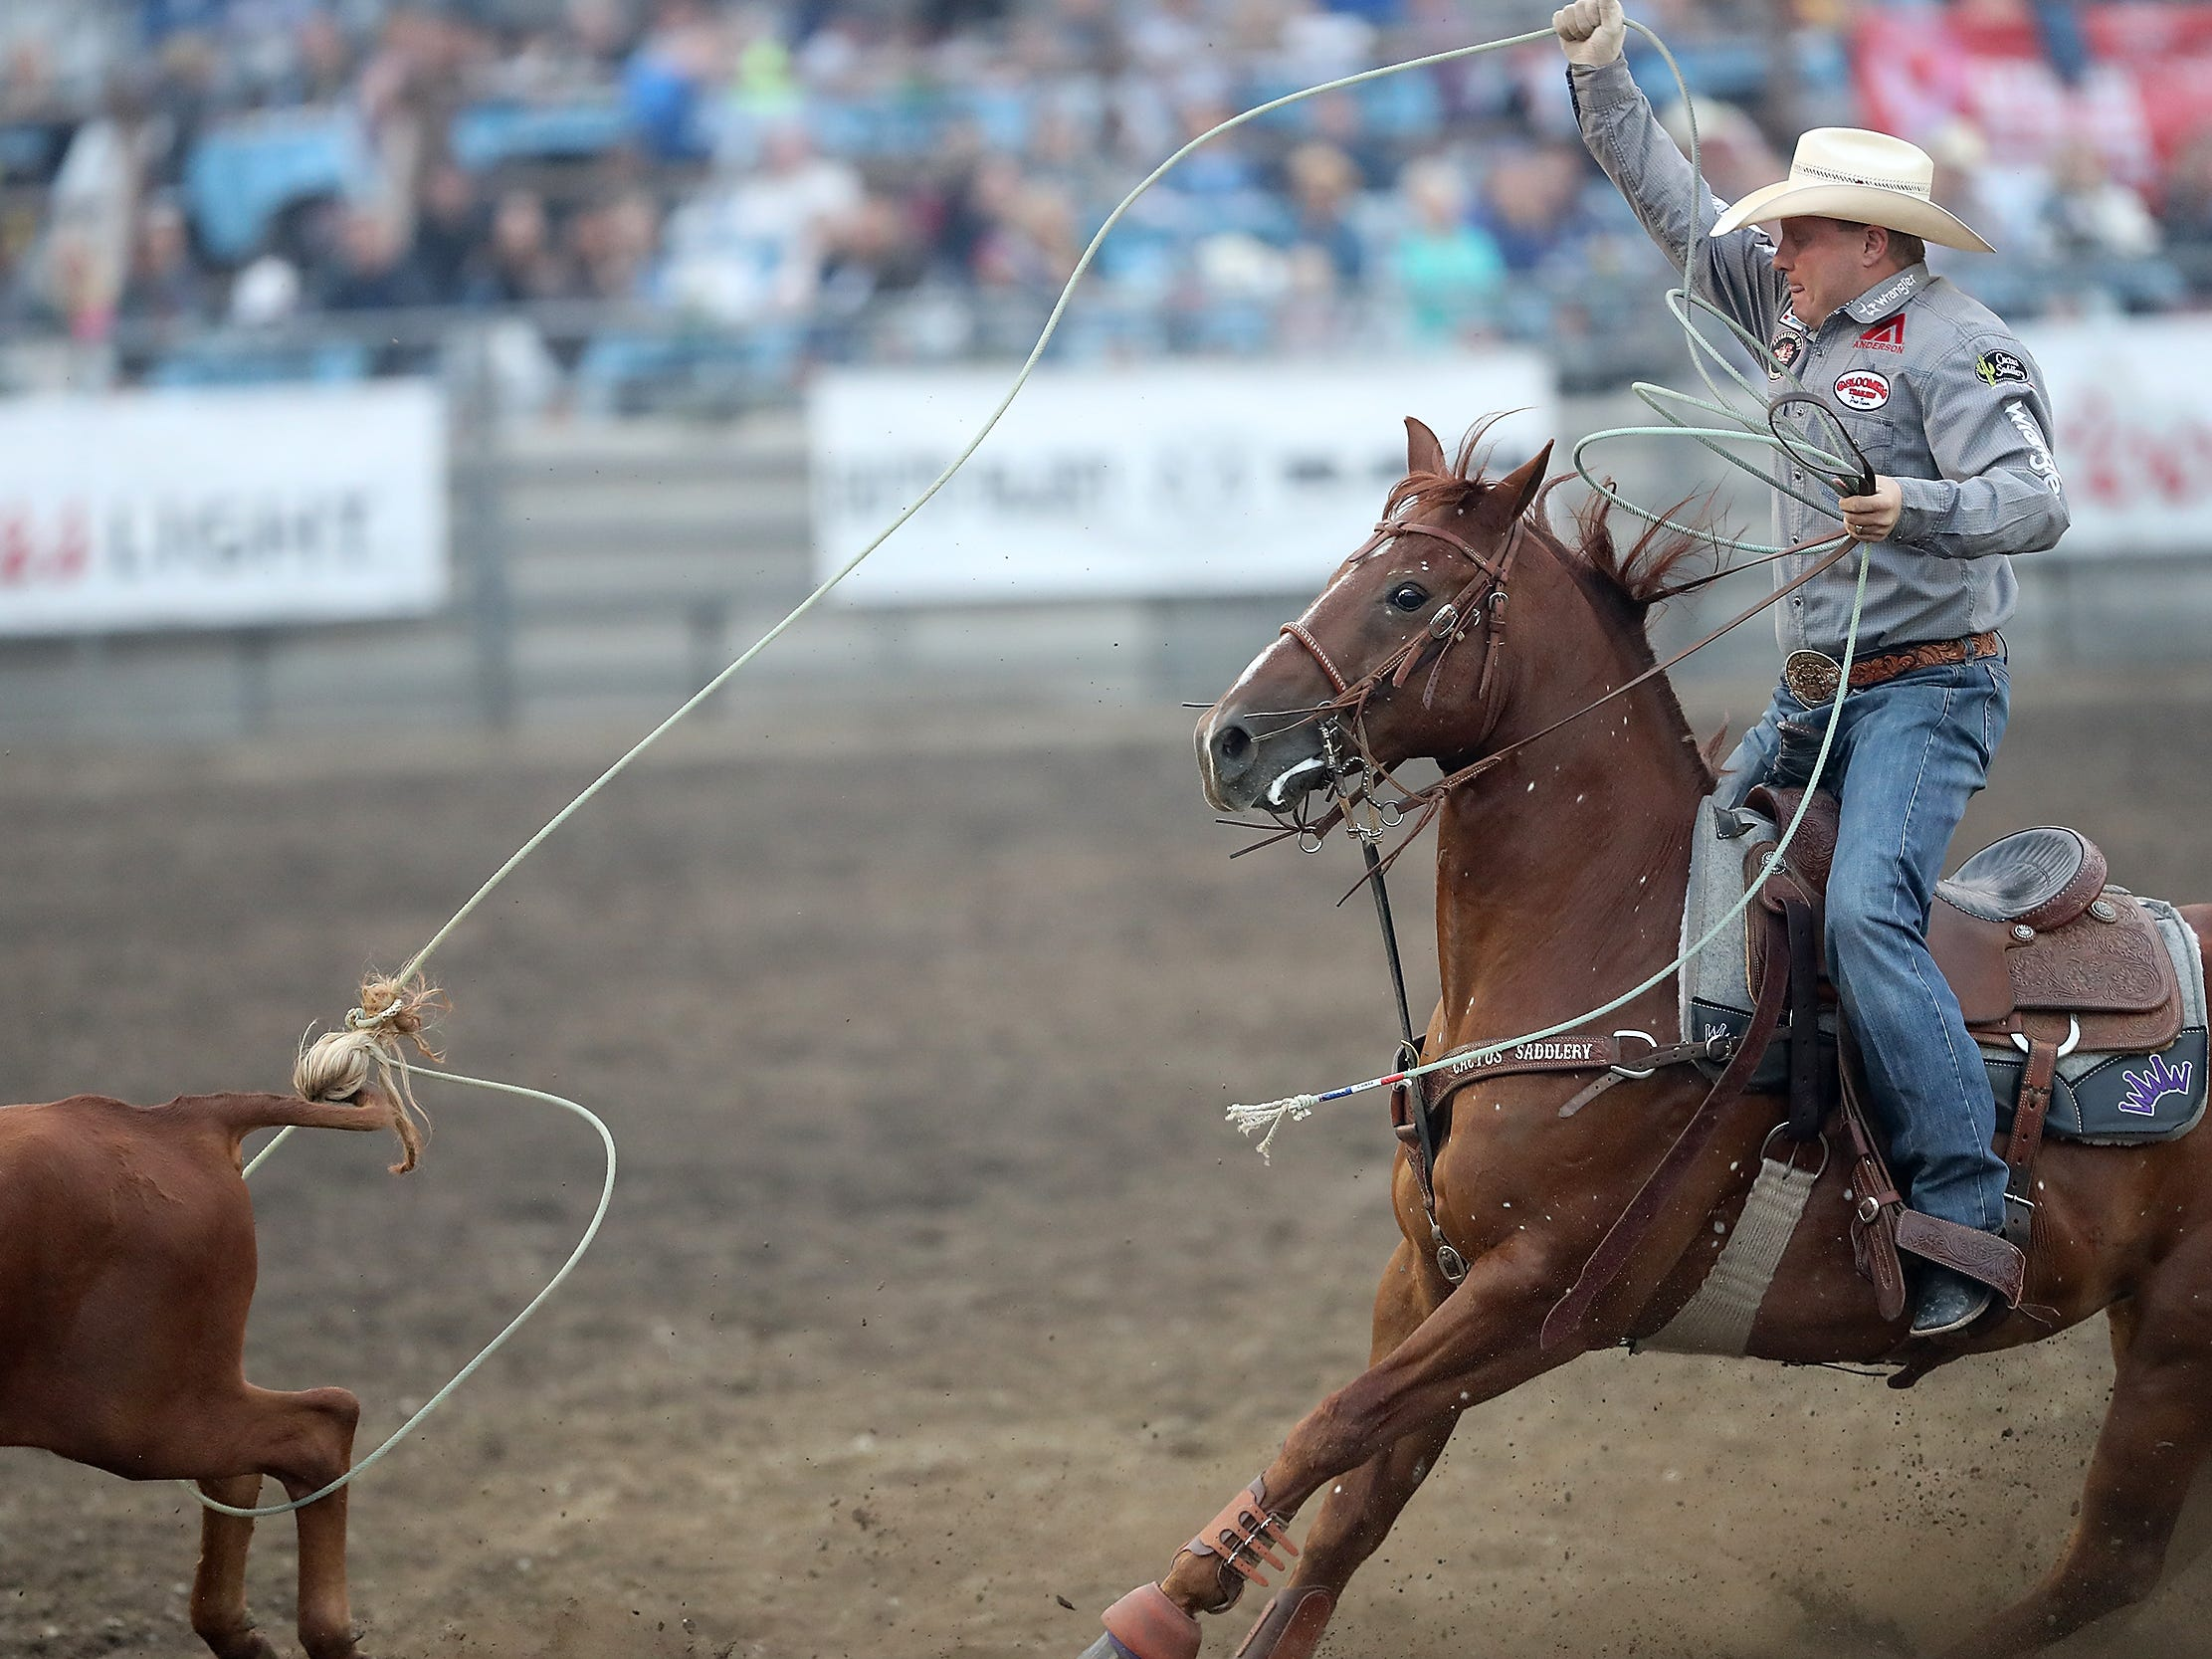 Brady Minor, or Ellensburg, WA, ropes the heels of a steer during the Team Roping event at the Kitsap County Fair & Stampede in Bremerton, Washington on Friday, August 24. 2018.